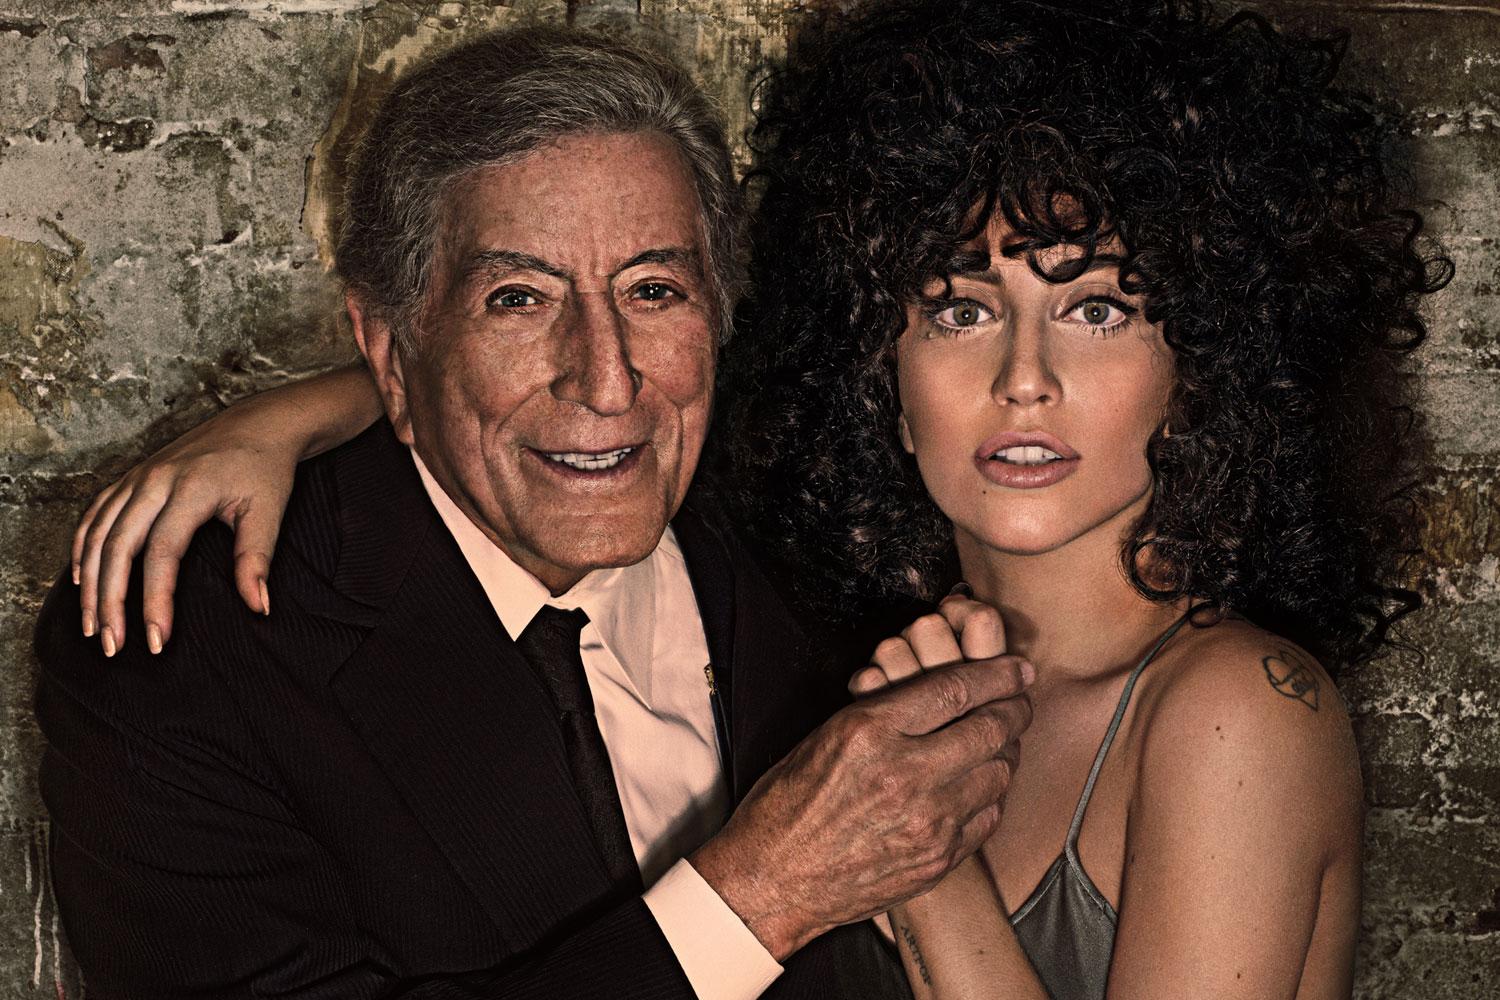 cheektocheek-desktop.jpg